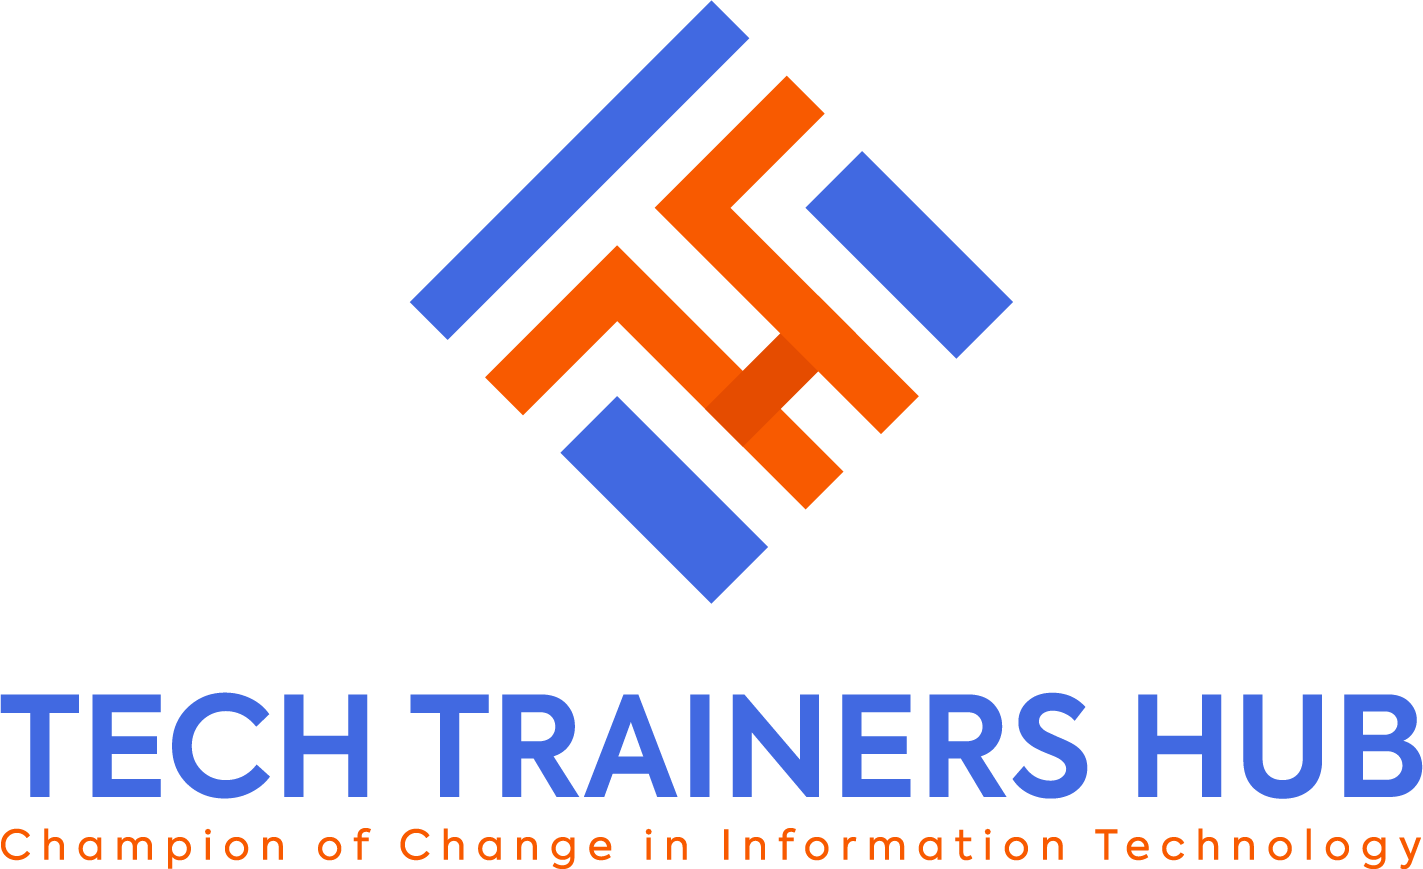 Tech Trainers Hub